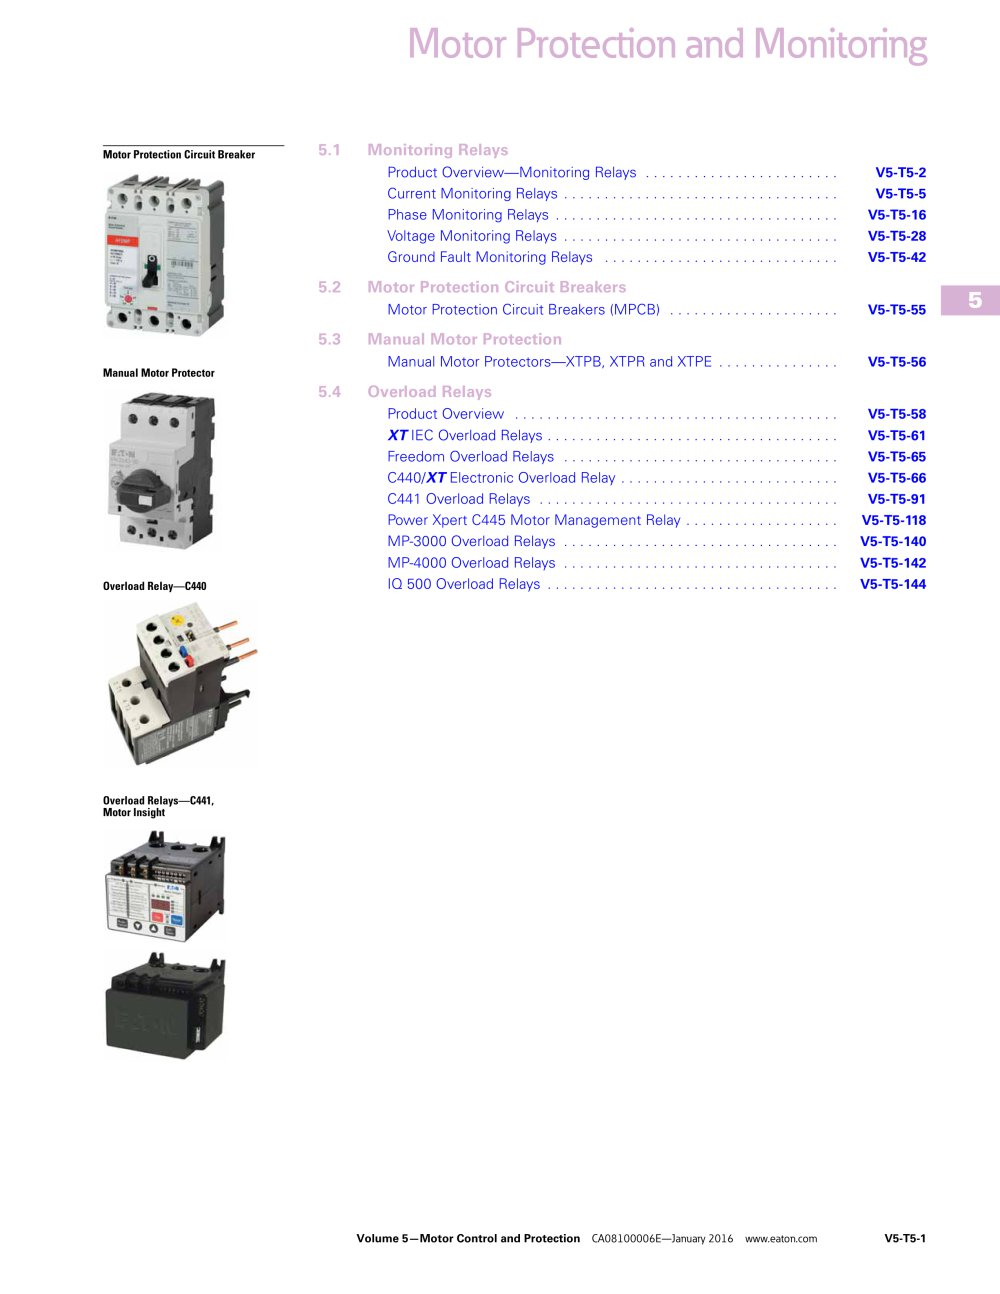 Eaton C440 Overload Relay Wiring Diagram Free Download Forward Reversing Starter Images Gallery